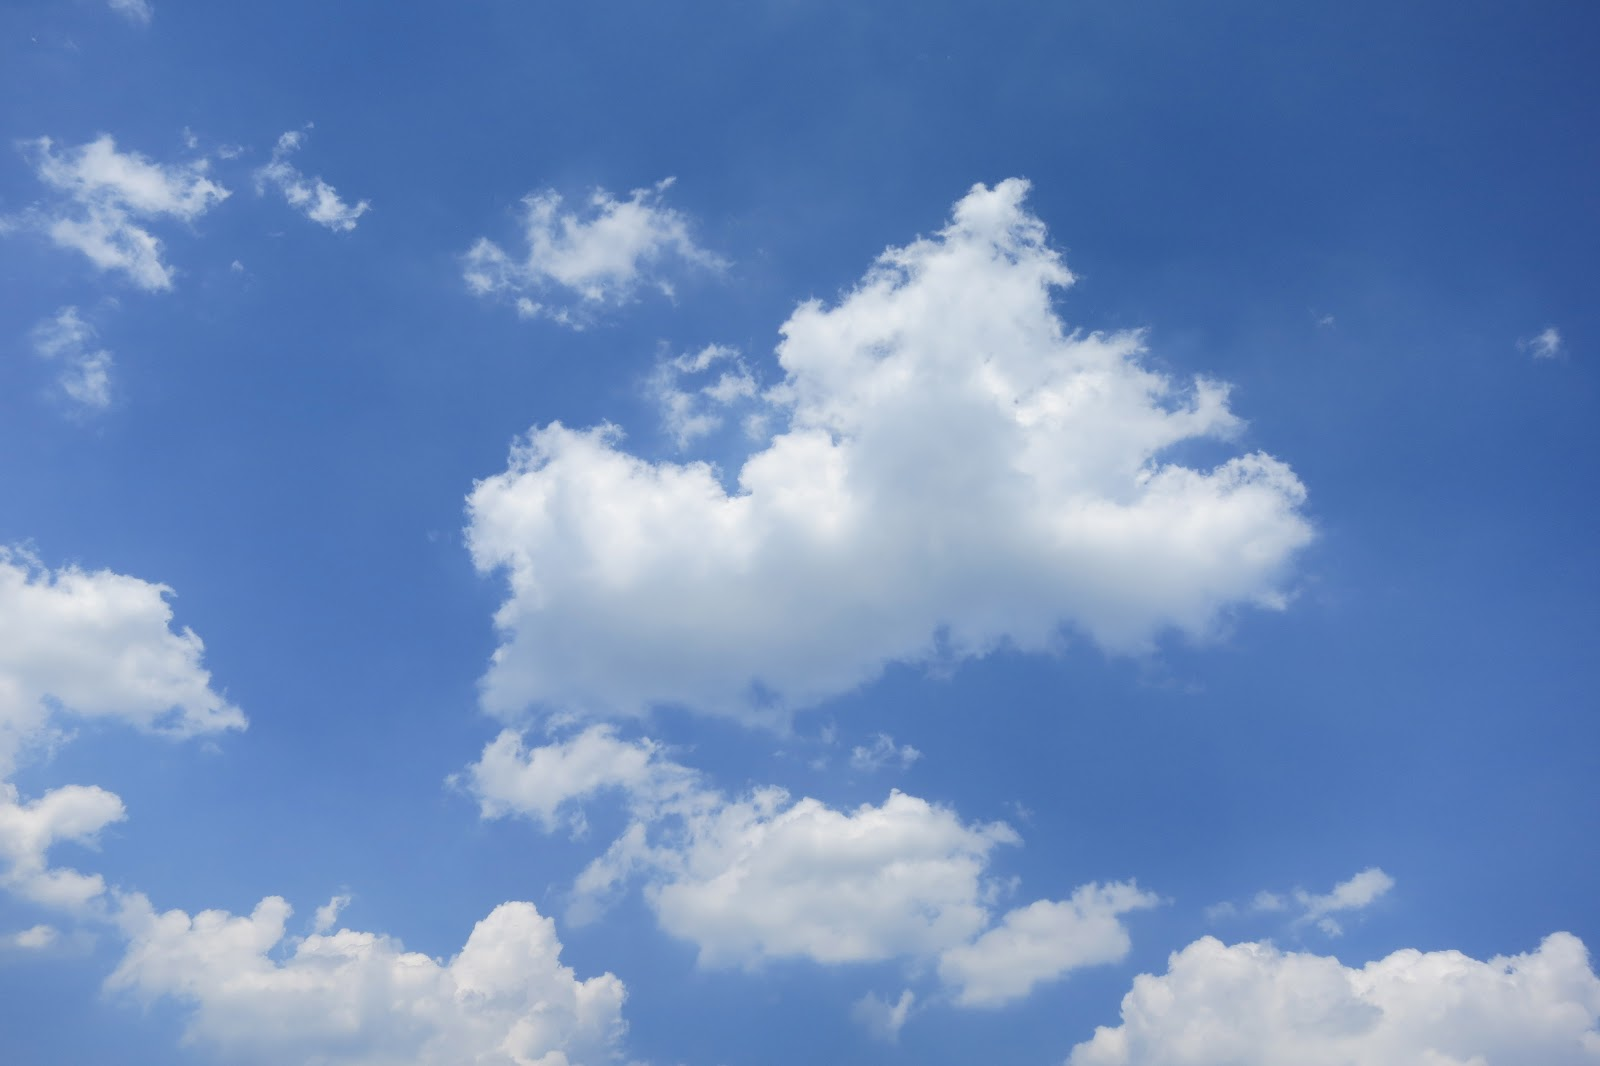 Partly cloudy weather today in UAE | The Filipino Times